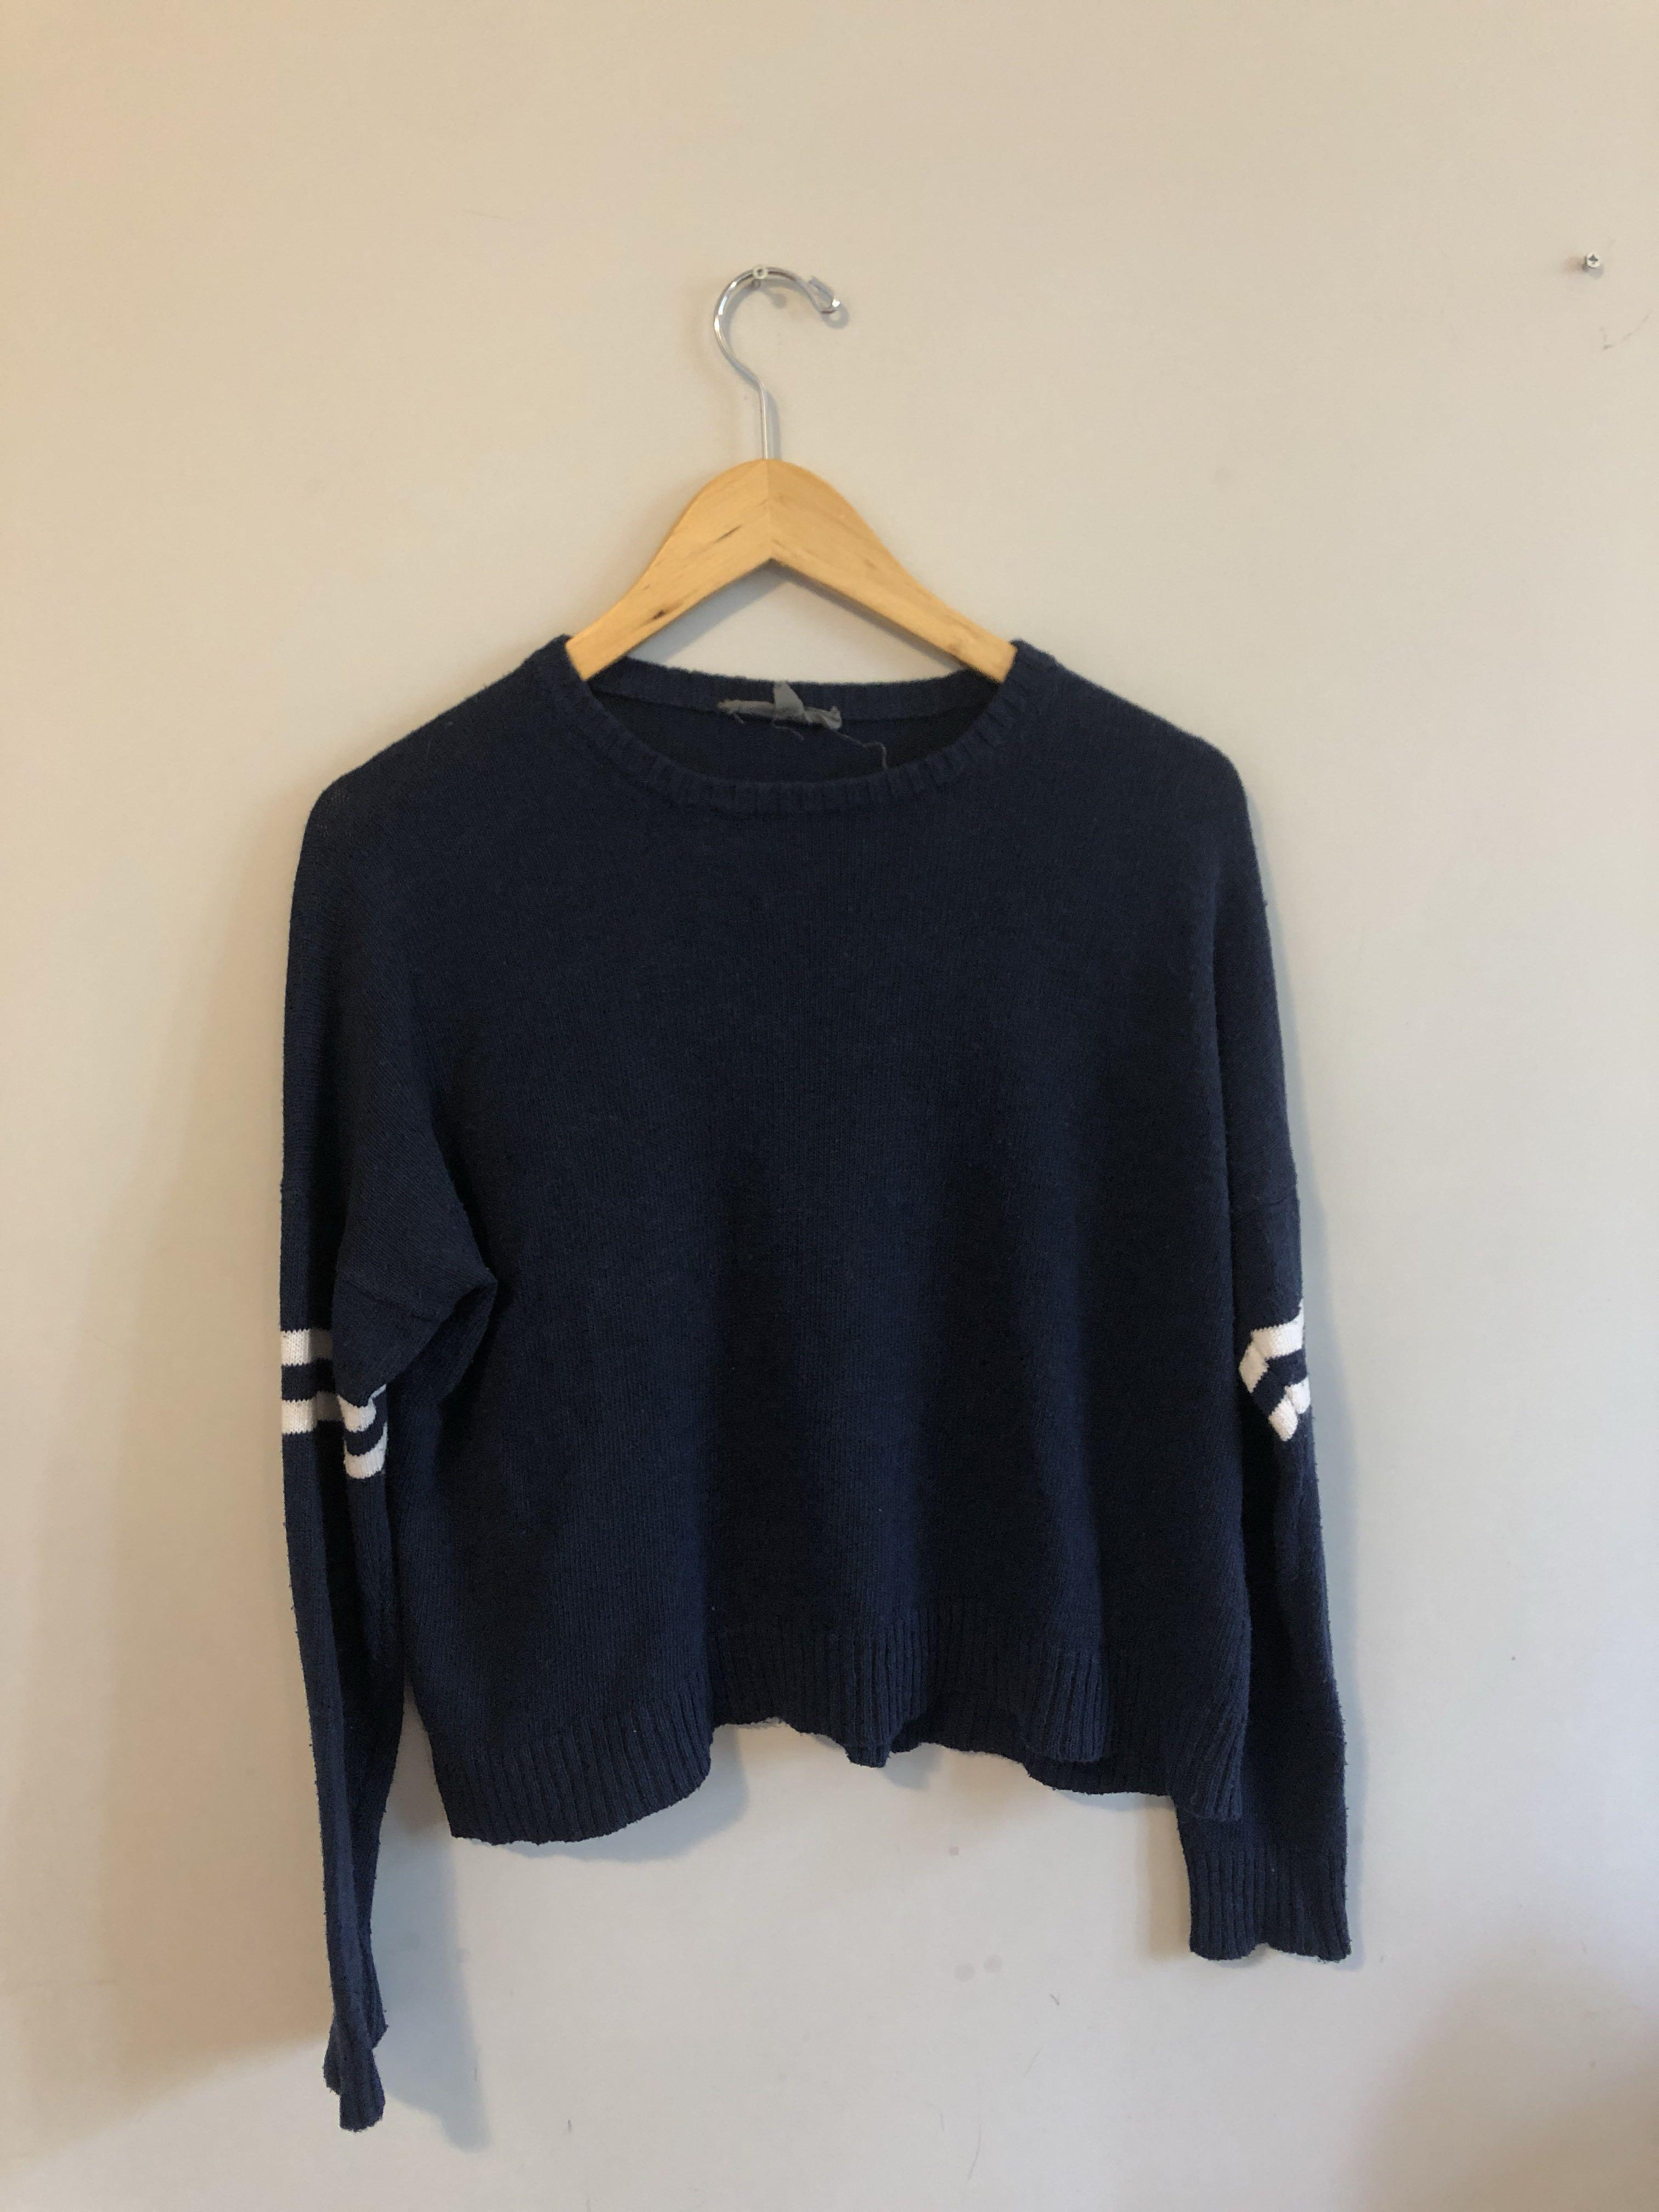 American Eagle navy blue sweater with white strips on sleeves